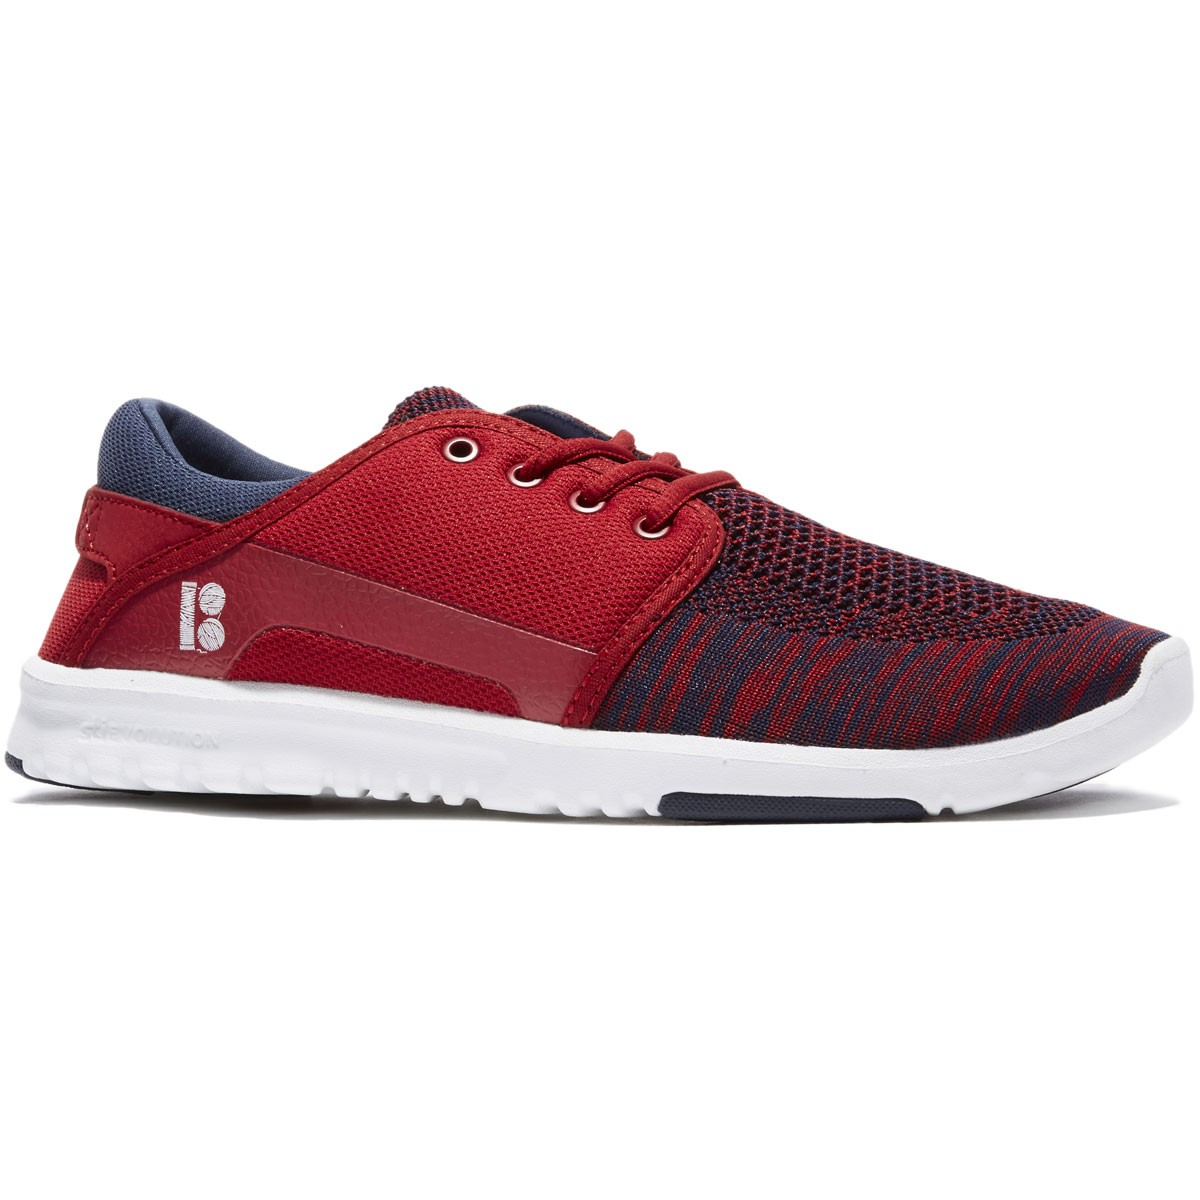 Etnies X Plan B Scout YB Shoes - Navy/Red/White - 8.0